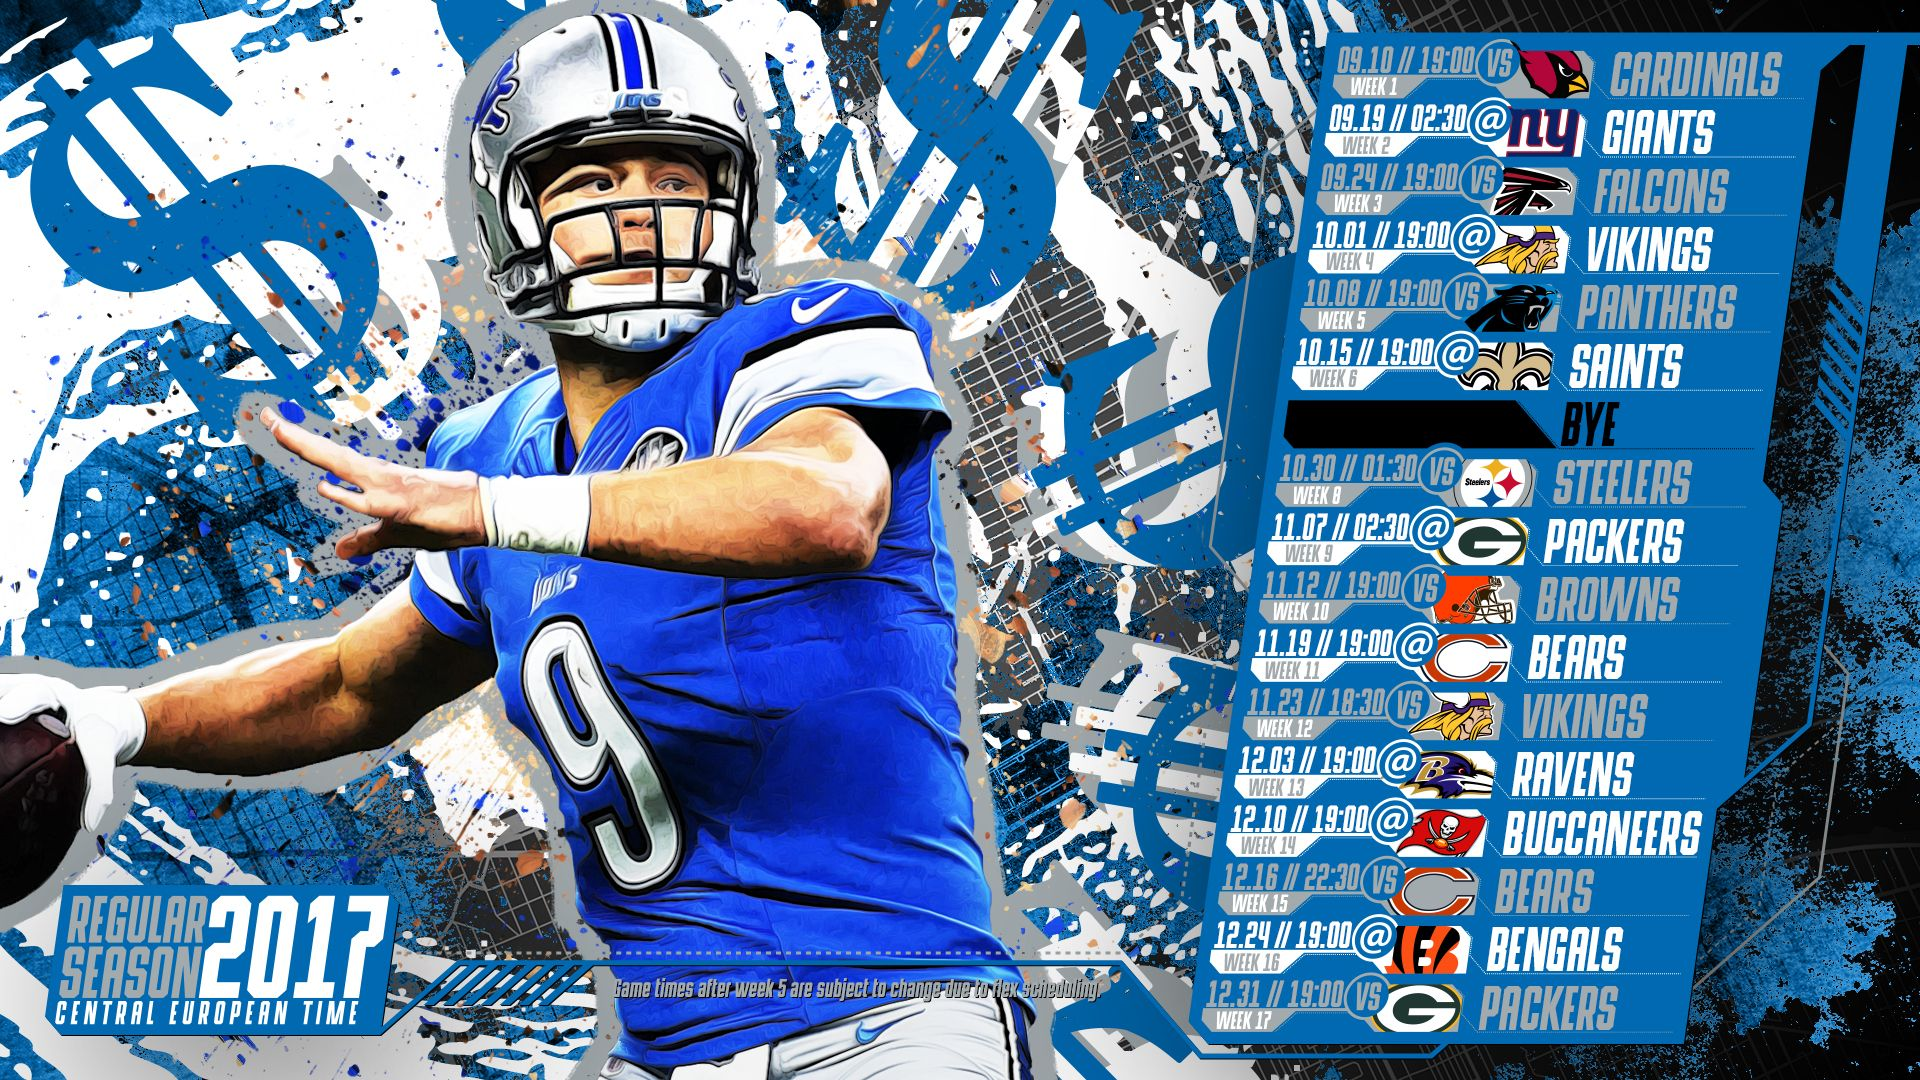 Schedule Wallpaper For The Detroit Lions Regular Season 2017 Central European Time Made By Tgersdiy Detroit Lions Detroit Lions